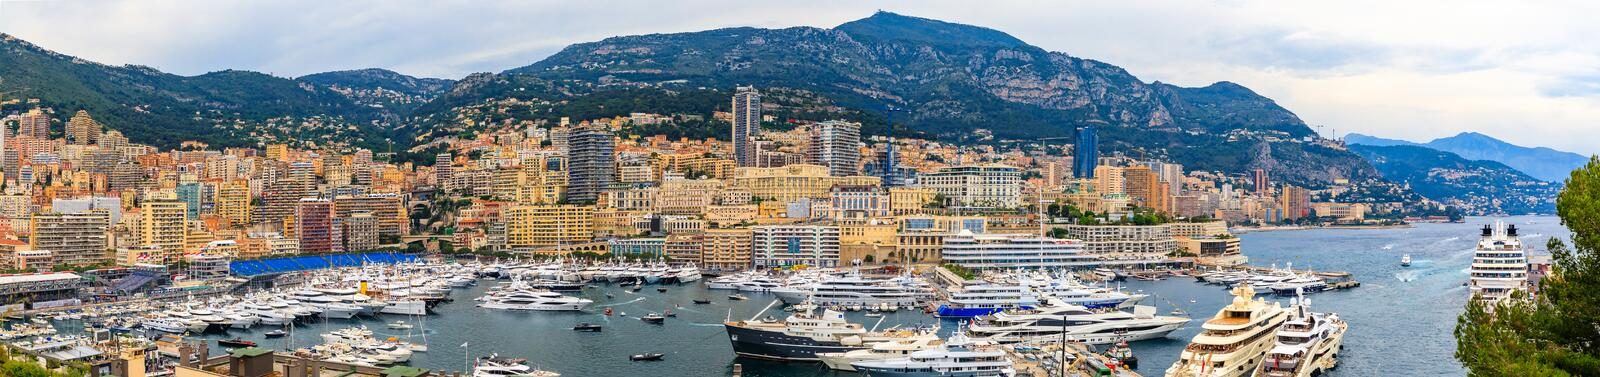 Monte Carlo panorama with luxury yachts and grand stands by the in harbor for Grand Prix F1 race in Monaco, Cote d'Azur royalty free stock images